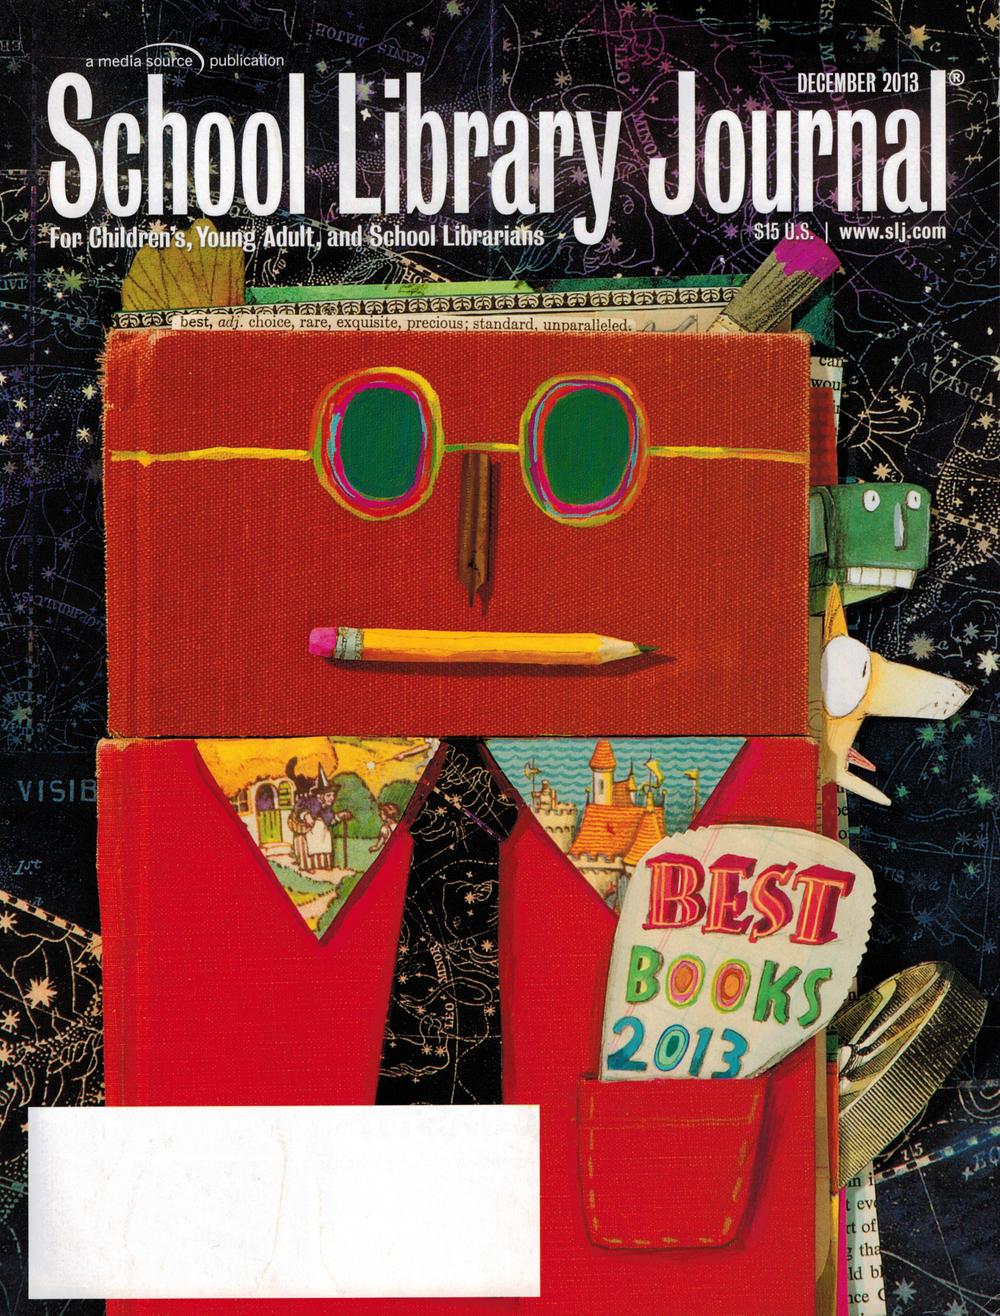 School Library Journal cover.JPG